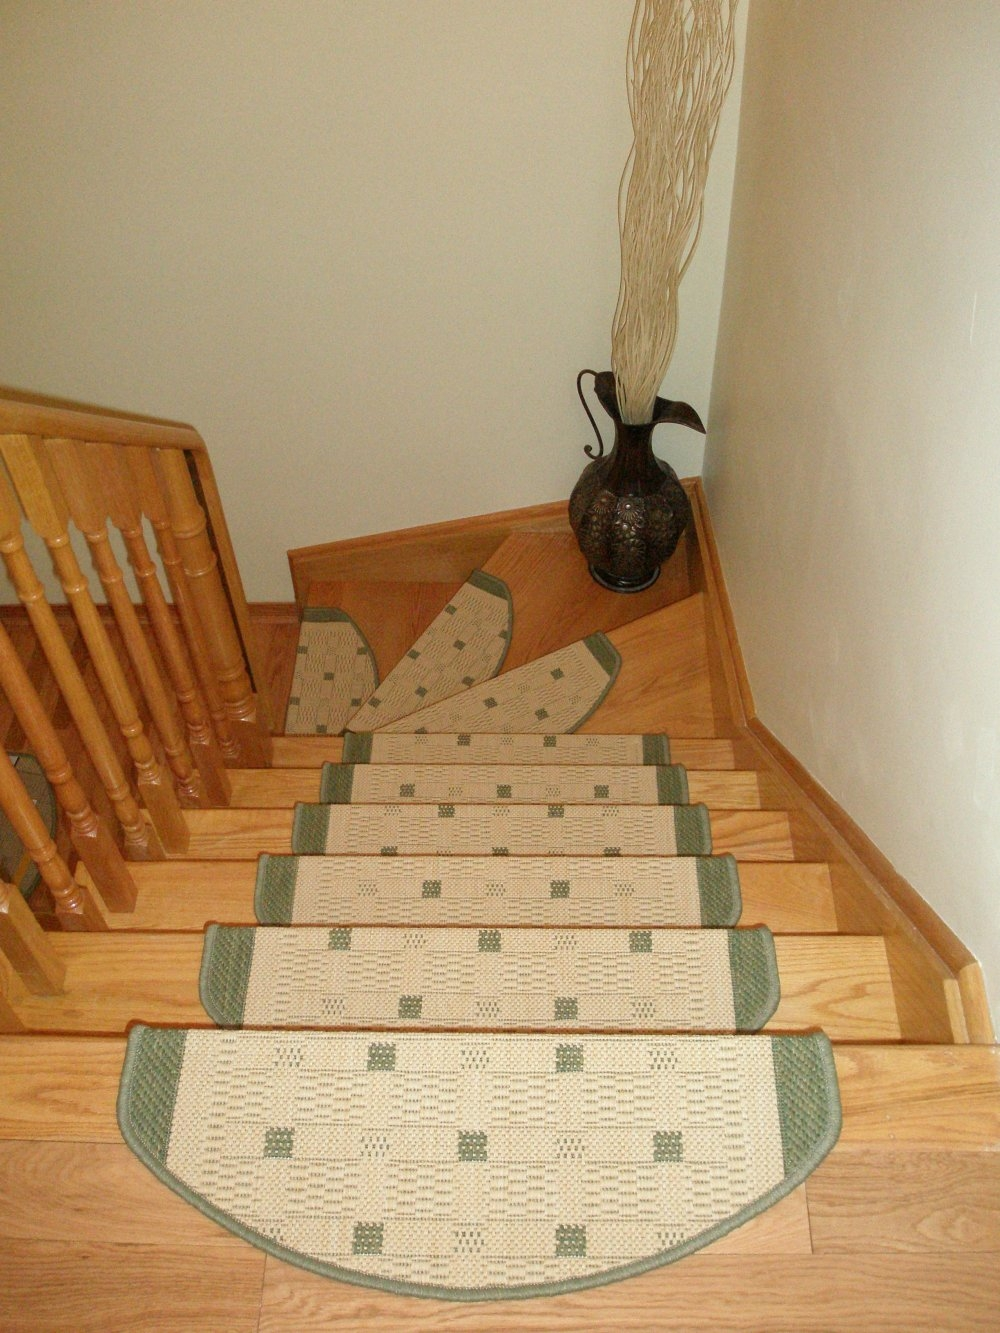 Carpet Stair Treads Stair Mats Stair Rugs For Wool Stair Rug Treads (View 16 of 20)